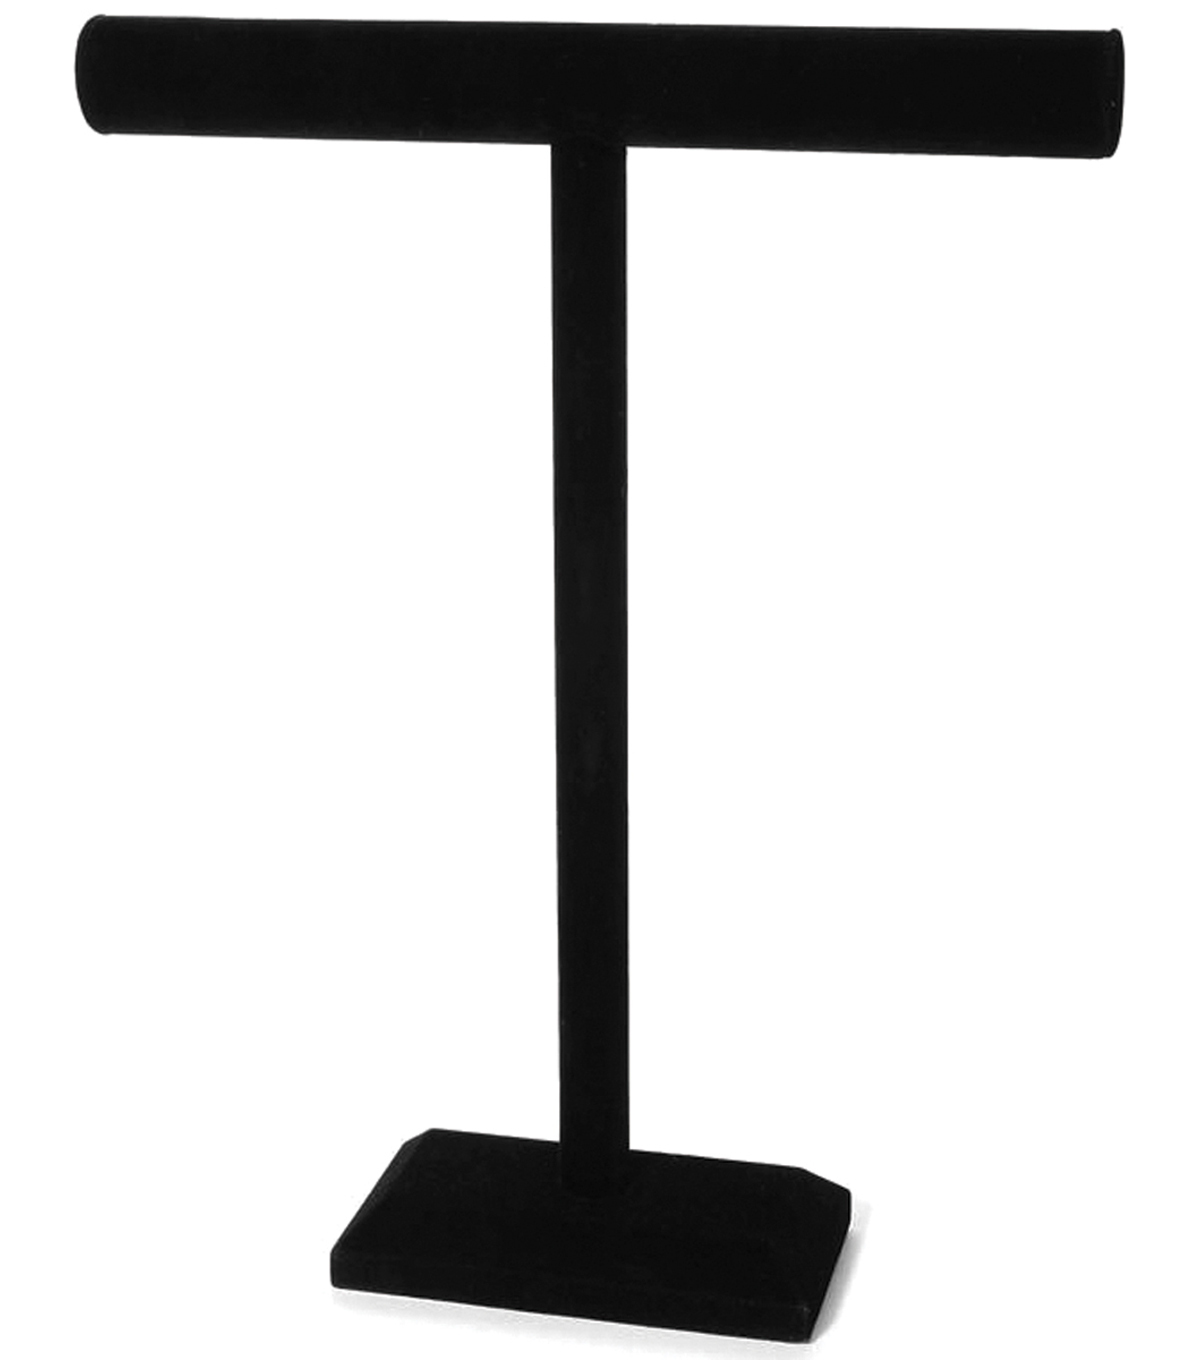 Darice Velvet Single Bar Jewelry Stand Black 18\u0022 x 14\u0022